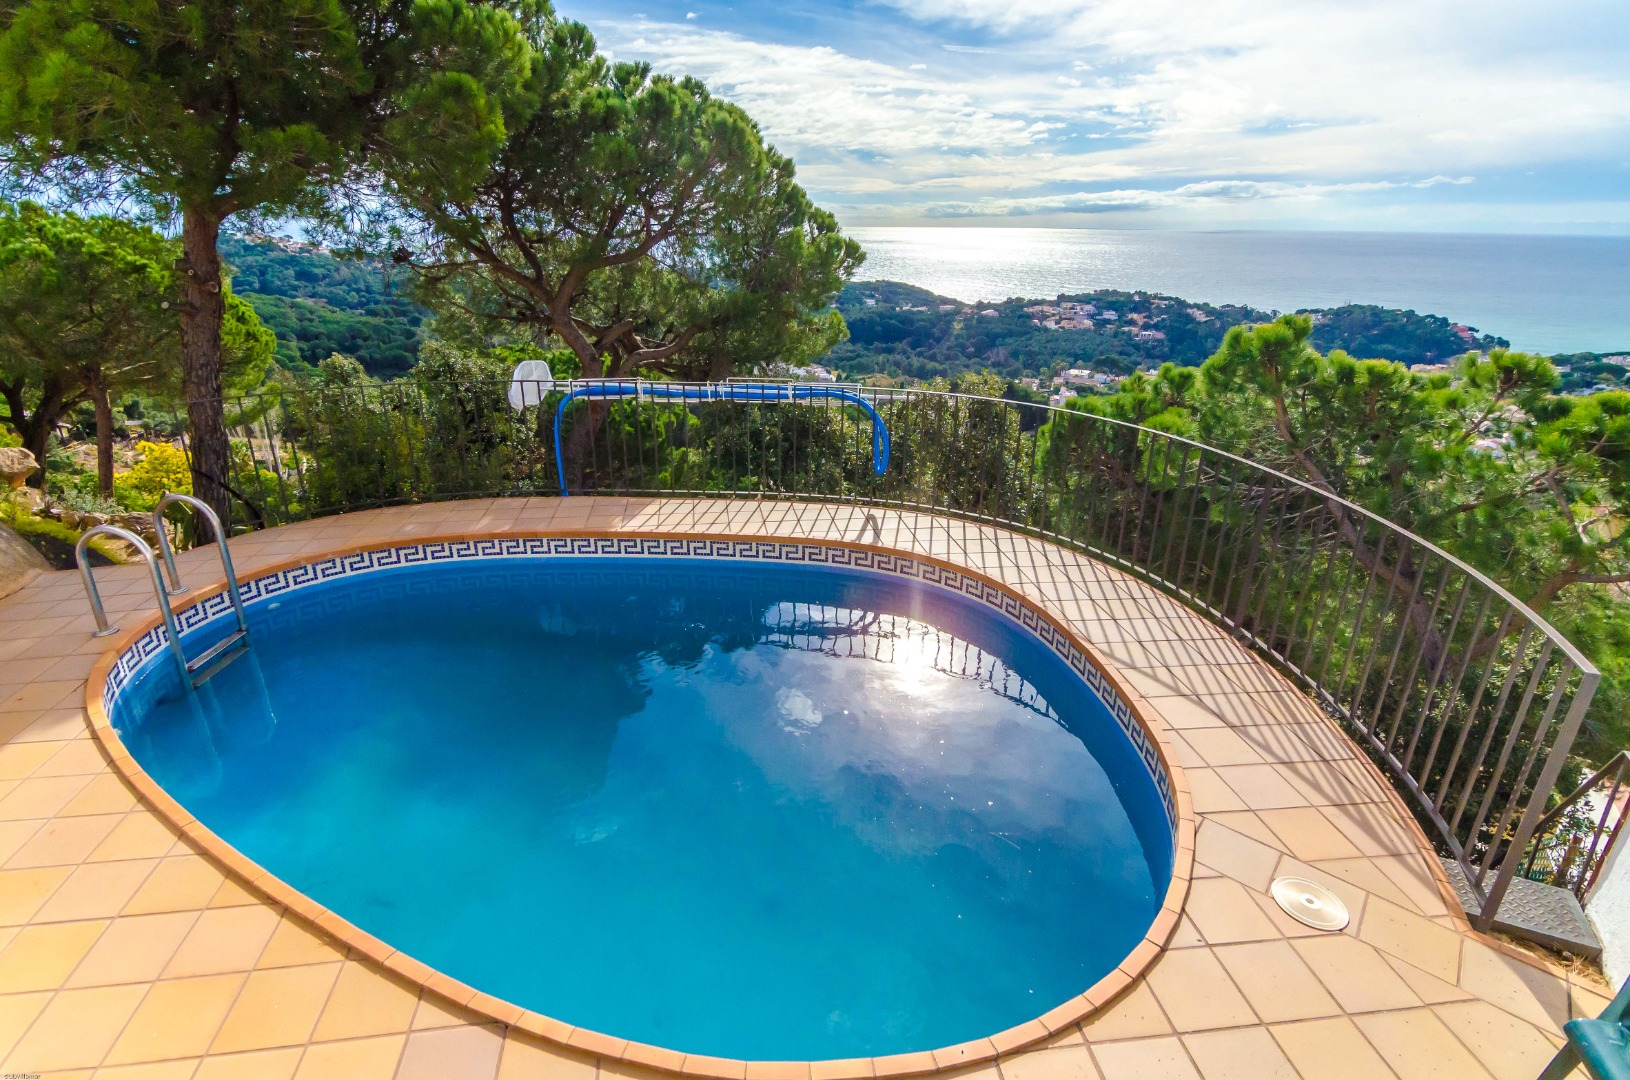 Villa Apartment Renata,Lloret de Mar,Costa Brava #1